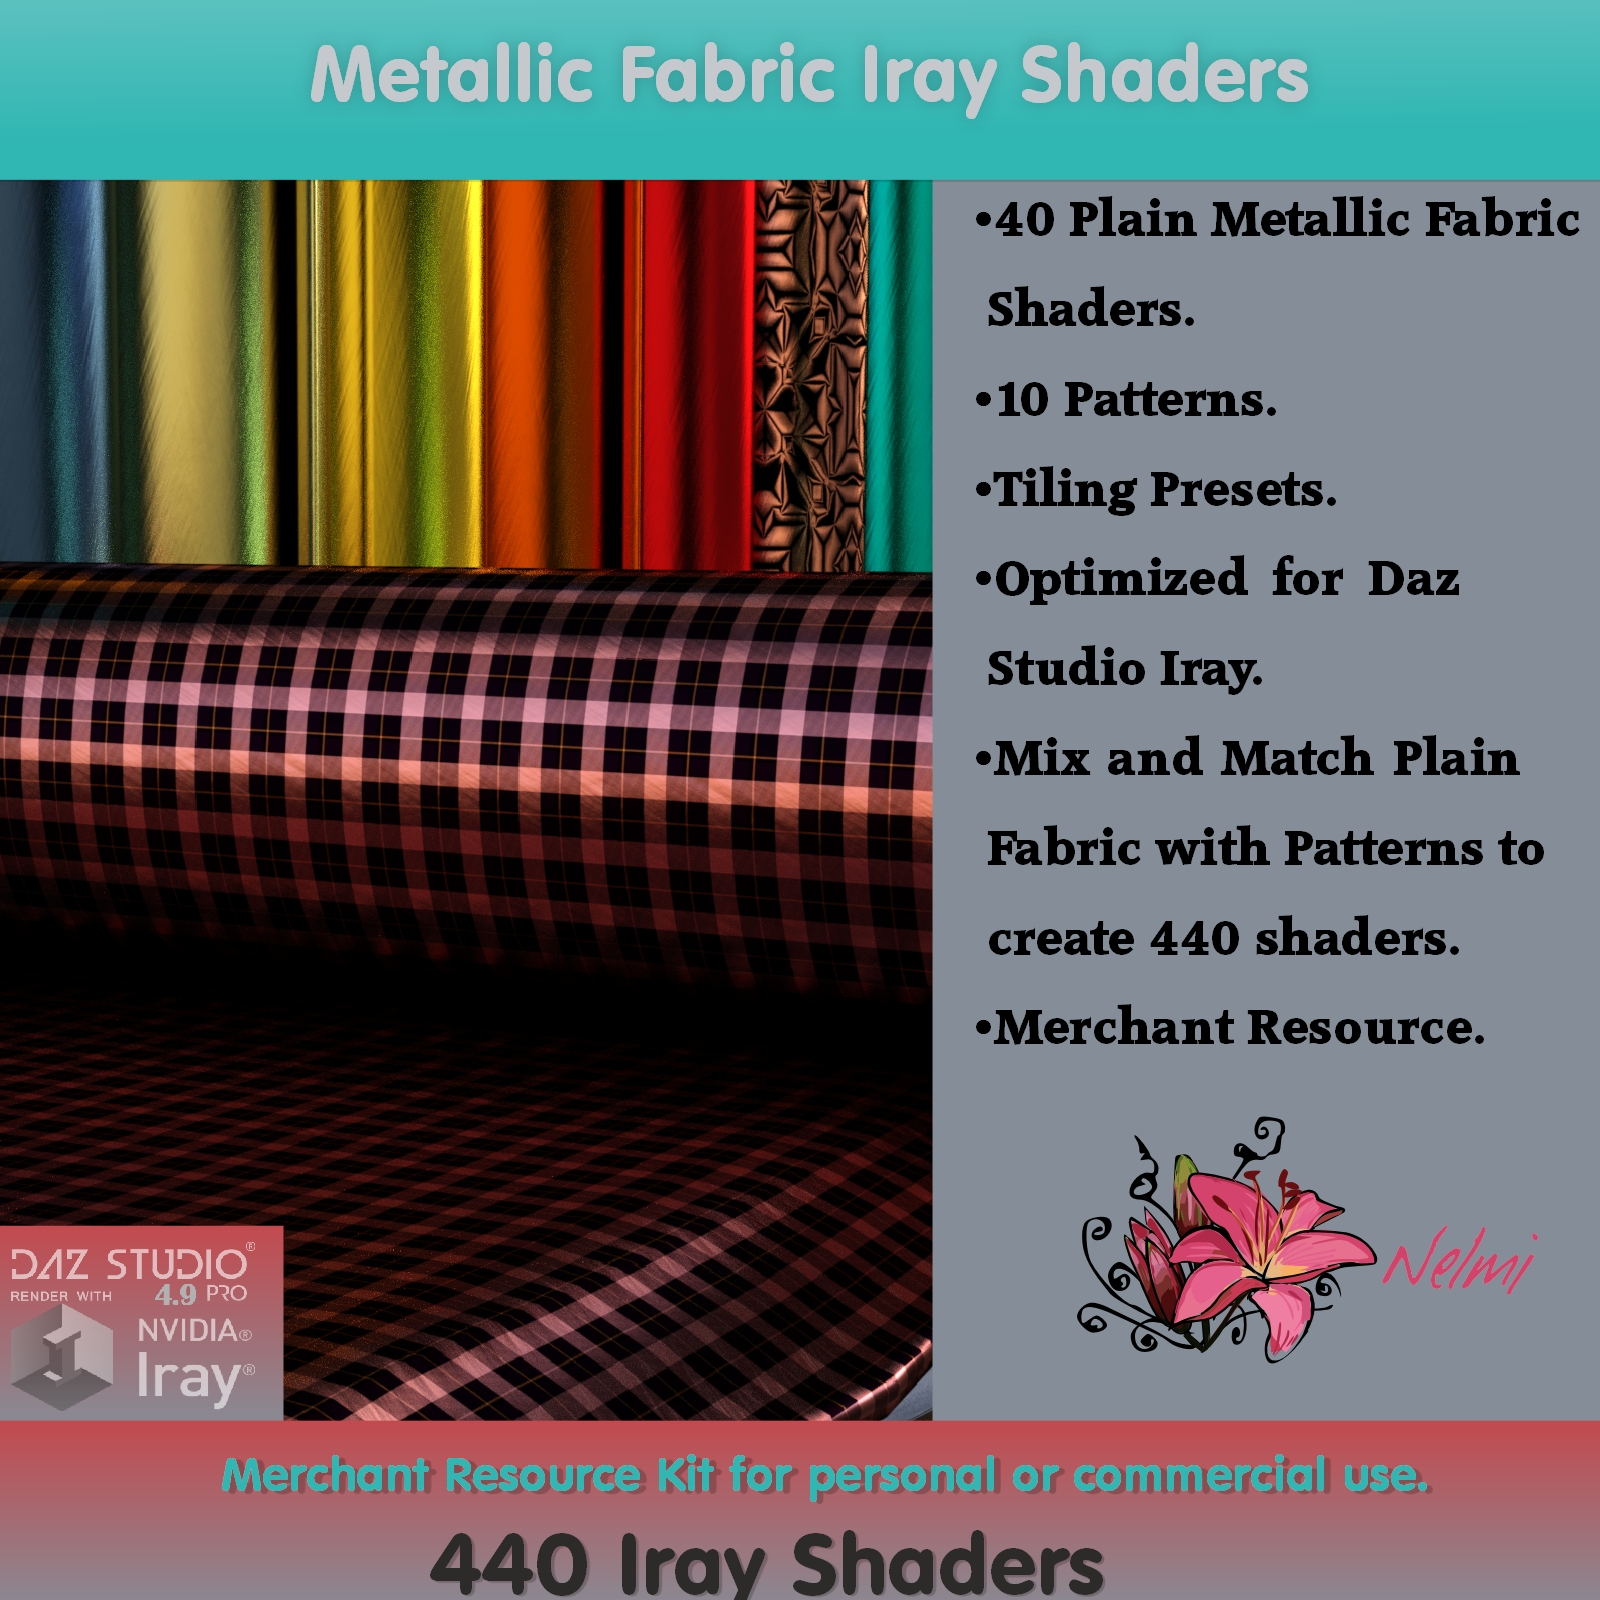 Metallic Fabric Iray Shaders - Merchant Resource